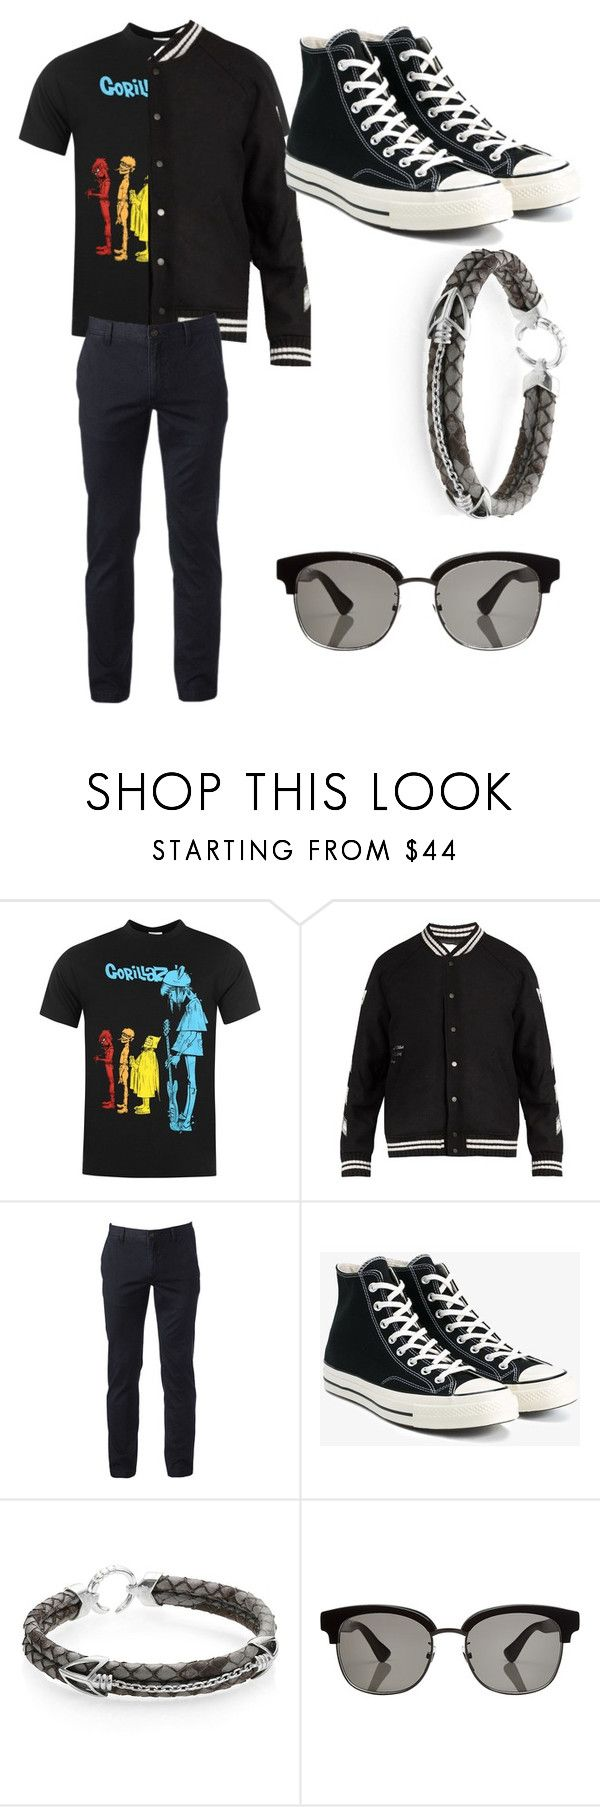 """""""Gth"""" by humbertocardozo ❤ liked on Polyvore featuring Off-White, Urban Pipeline, Converse, StingHD, Gucci, men's fashion and menswear"""